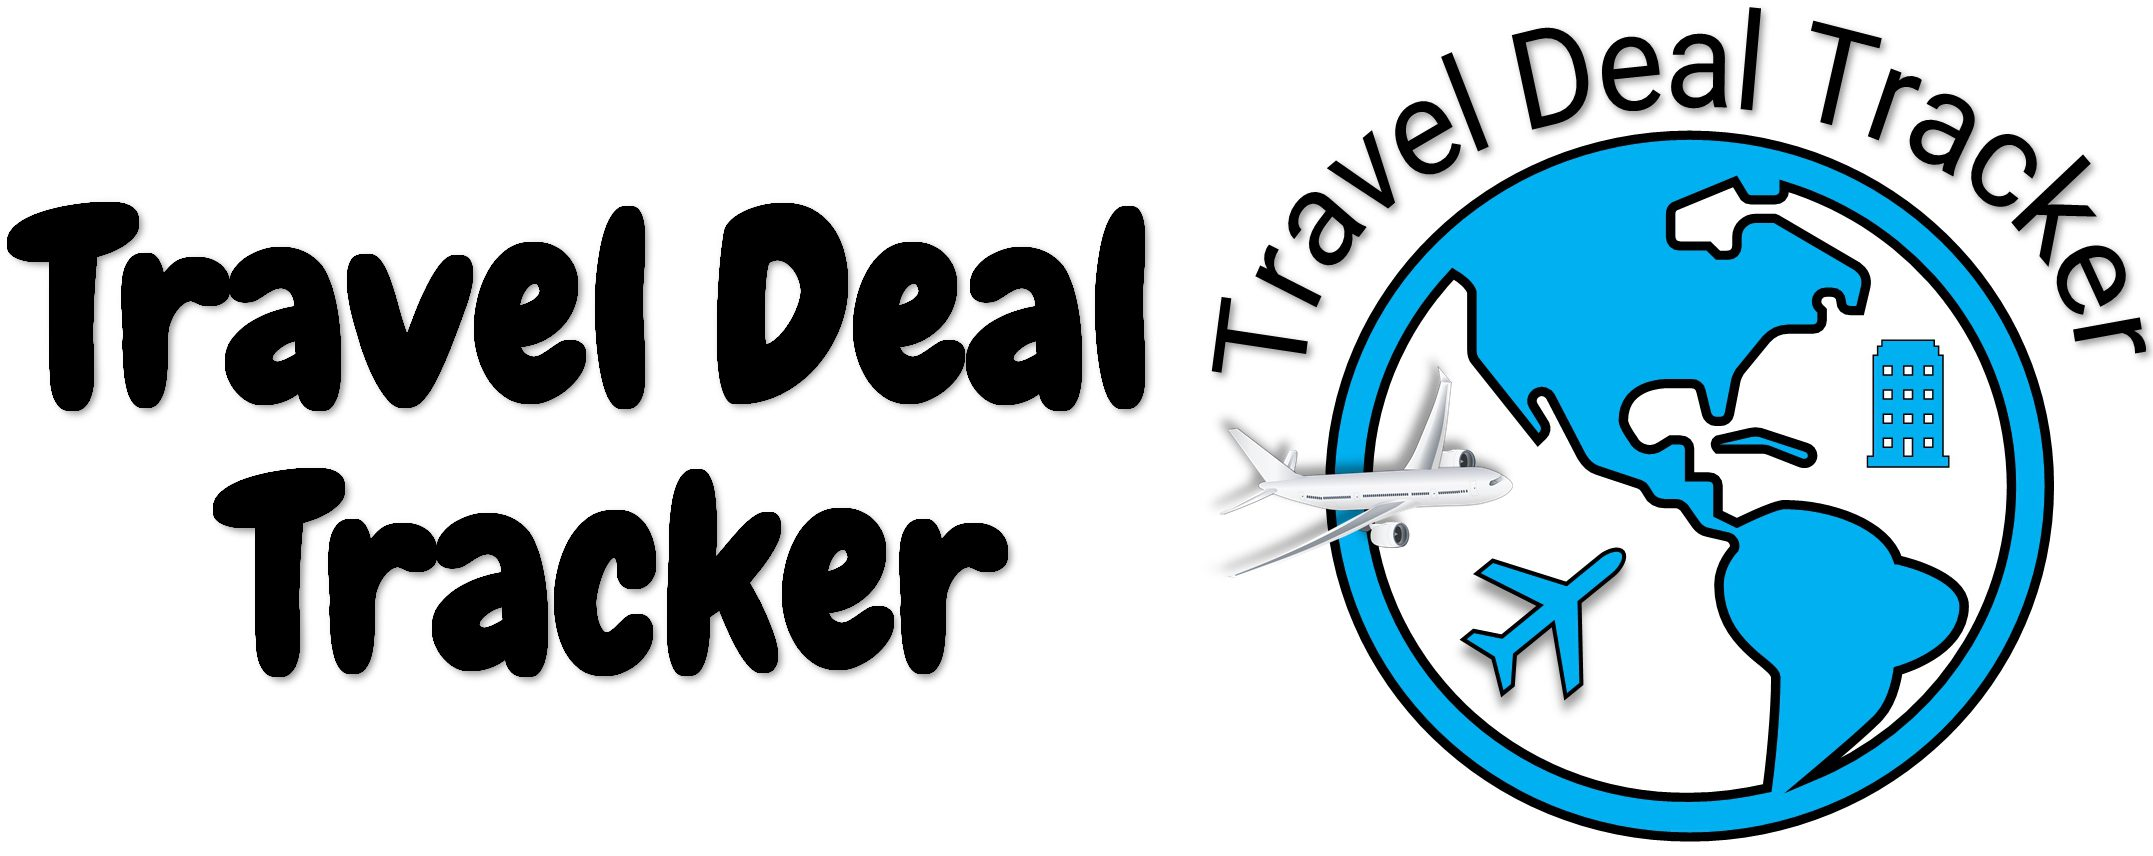 Travel Deal Tracker